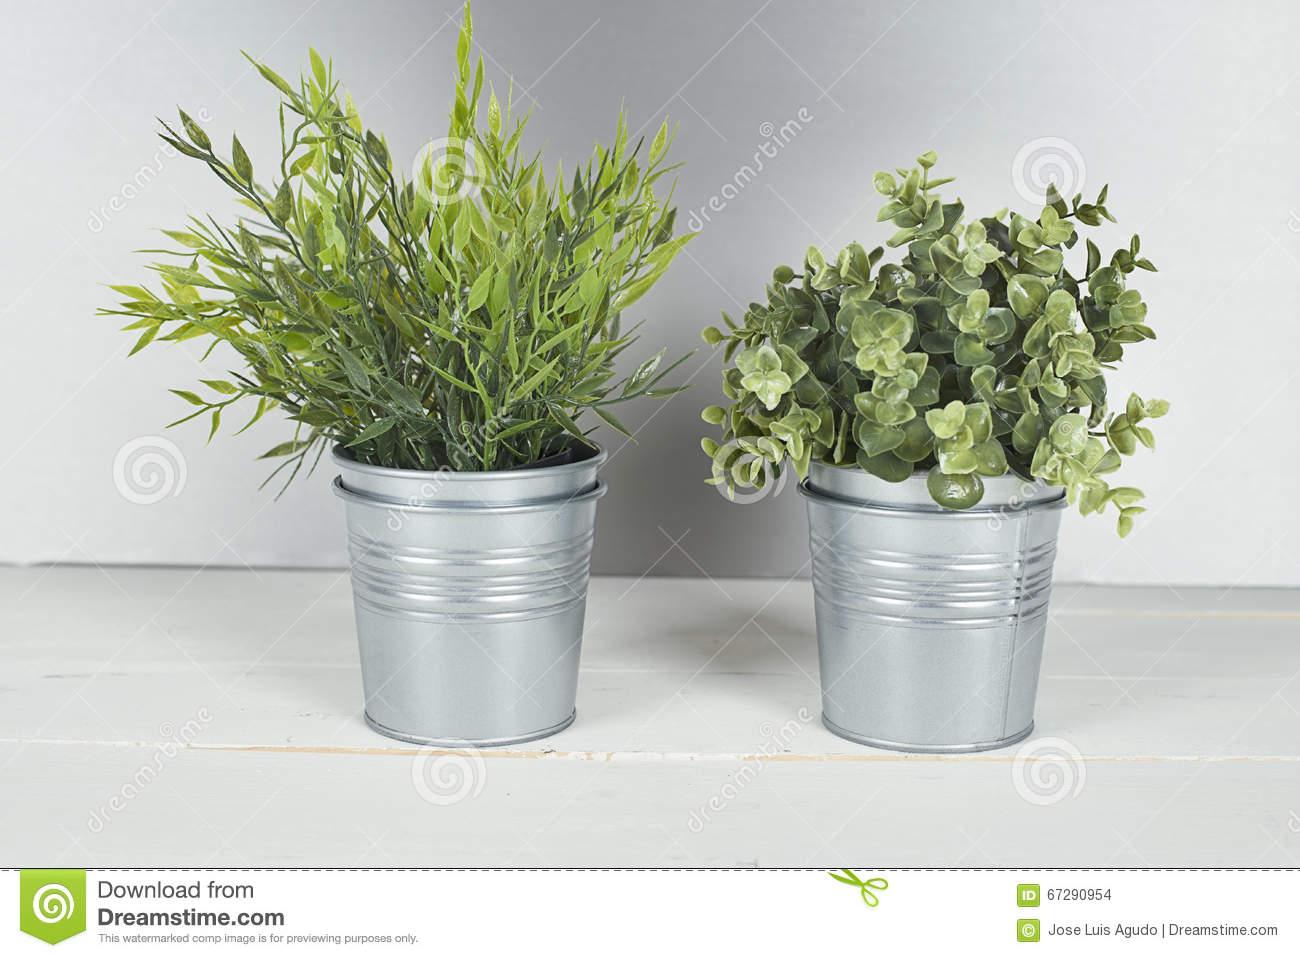 Two plants with metal pot on wooden table.